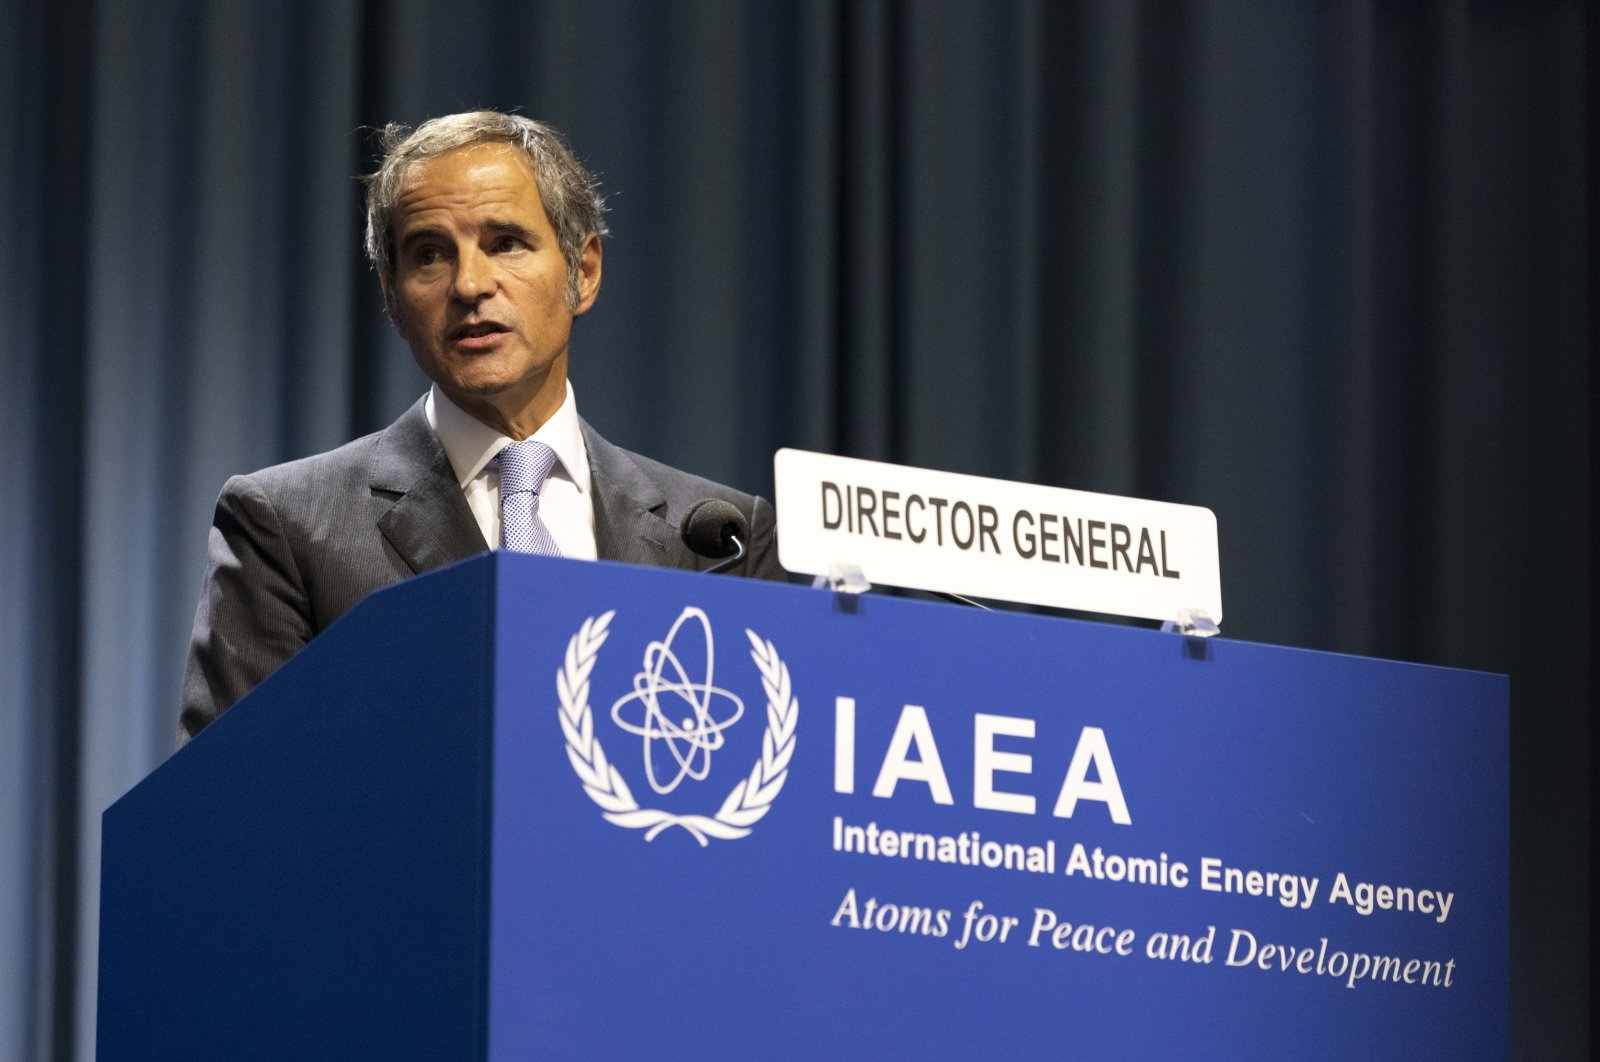 Director-General of the International Atomic Energy Agency, IAEA, Rafael Mariano Grossi from Argentina, talks on stage at the International Atomic Energy's (IAEA) General Conference about nuclear verification in Iran in Vienna, Austria, Sept. 20, 2021. (AP Photo)